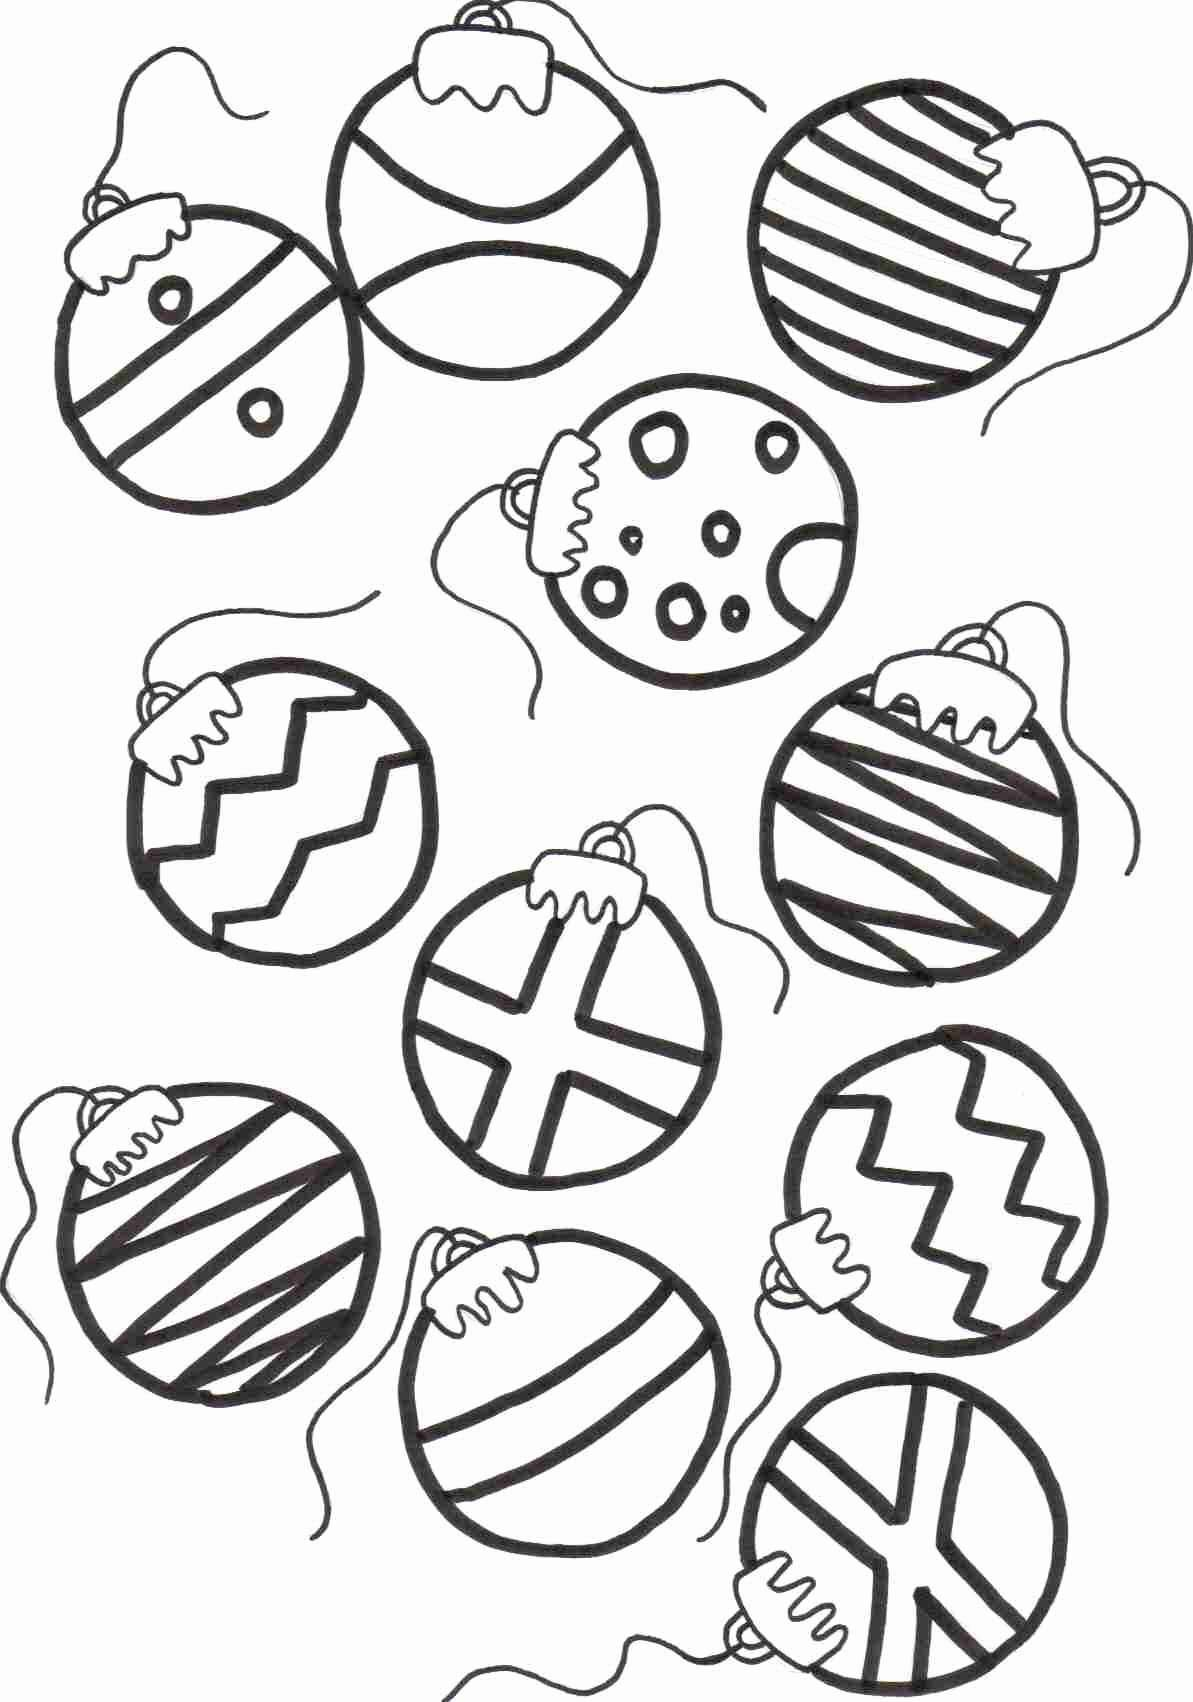 Christmas Colouring Pages Decorations With Tree Ornaments Archives Codraw Co Fresh